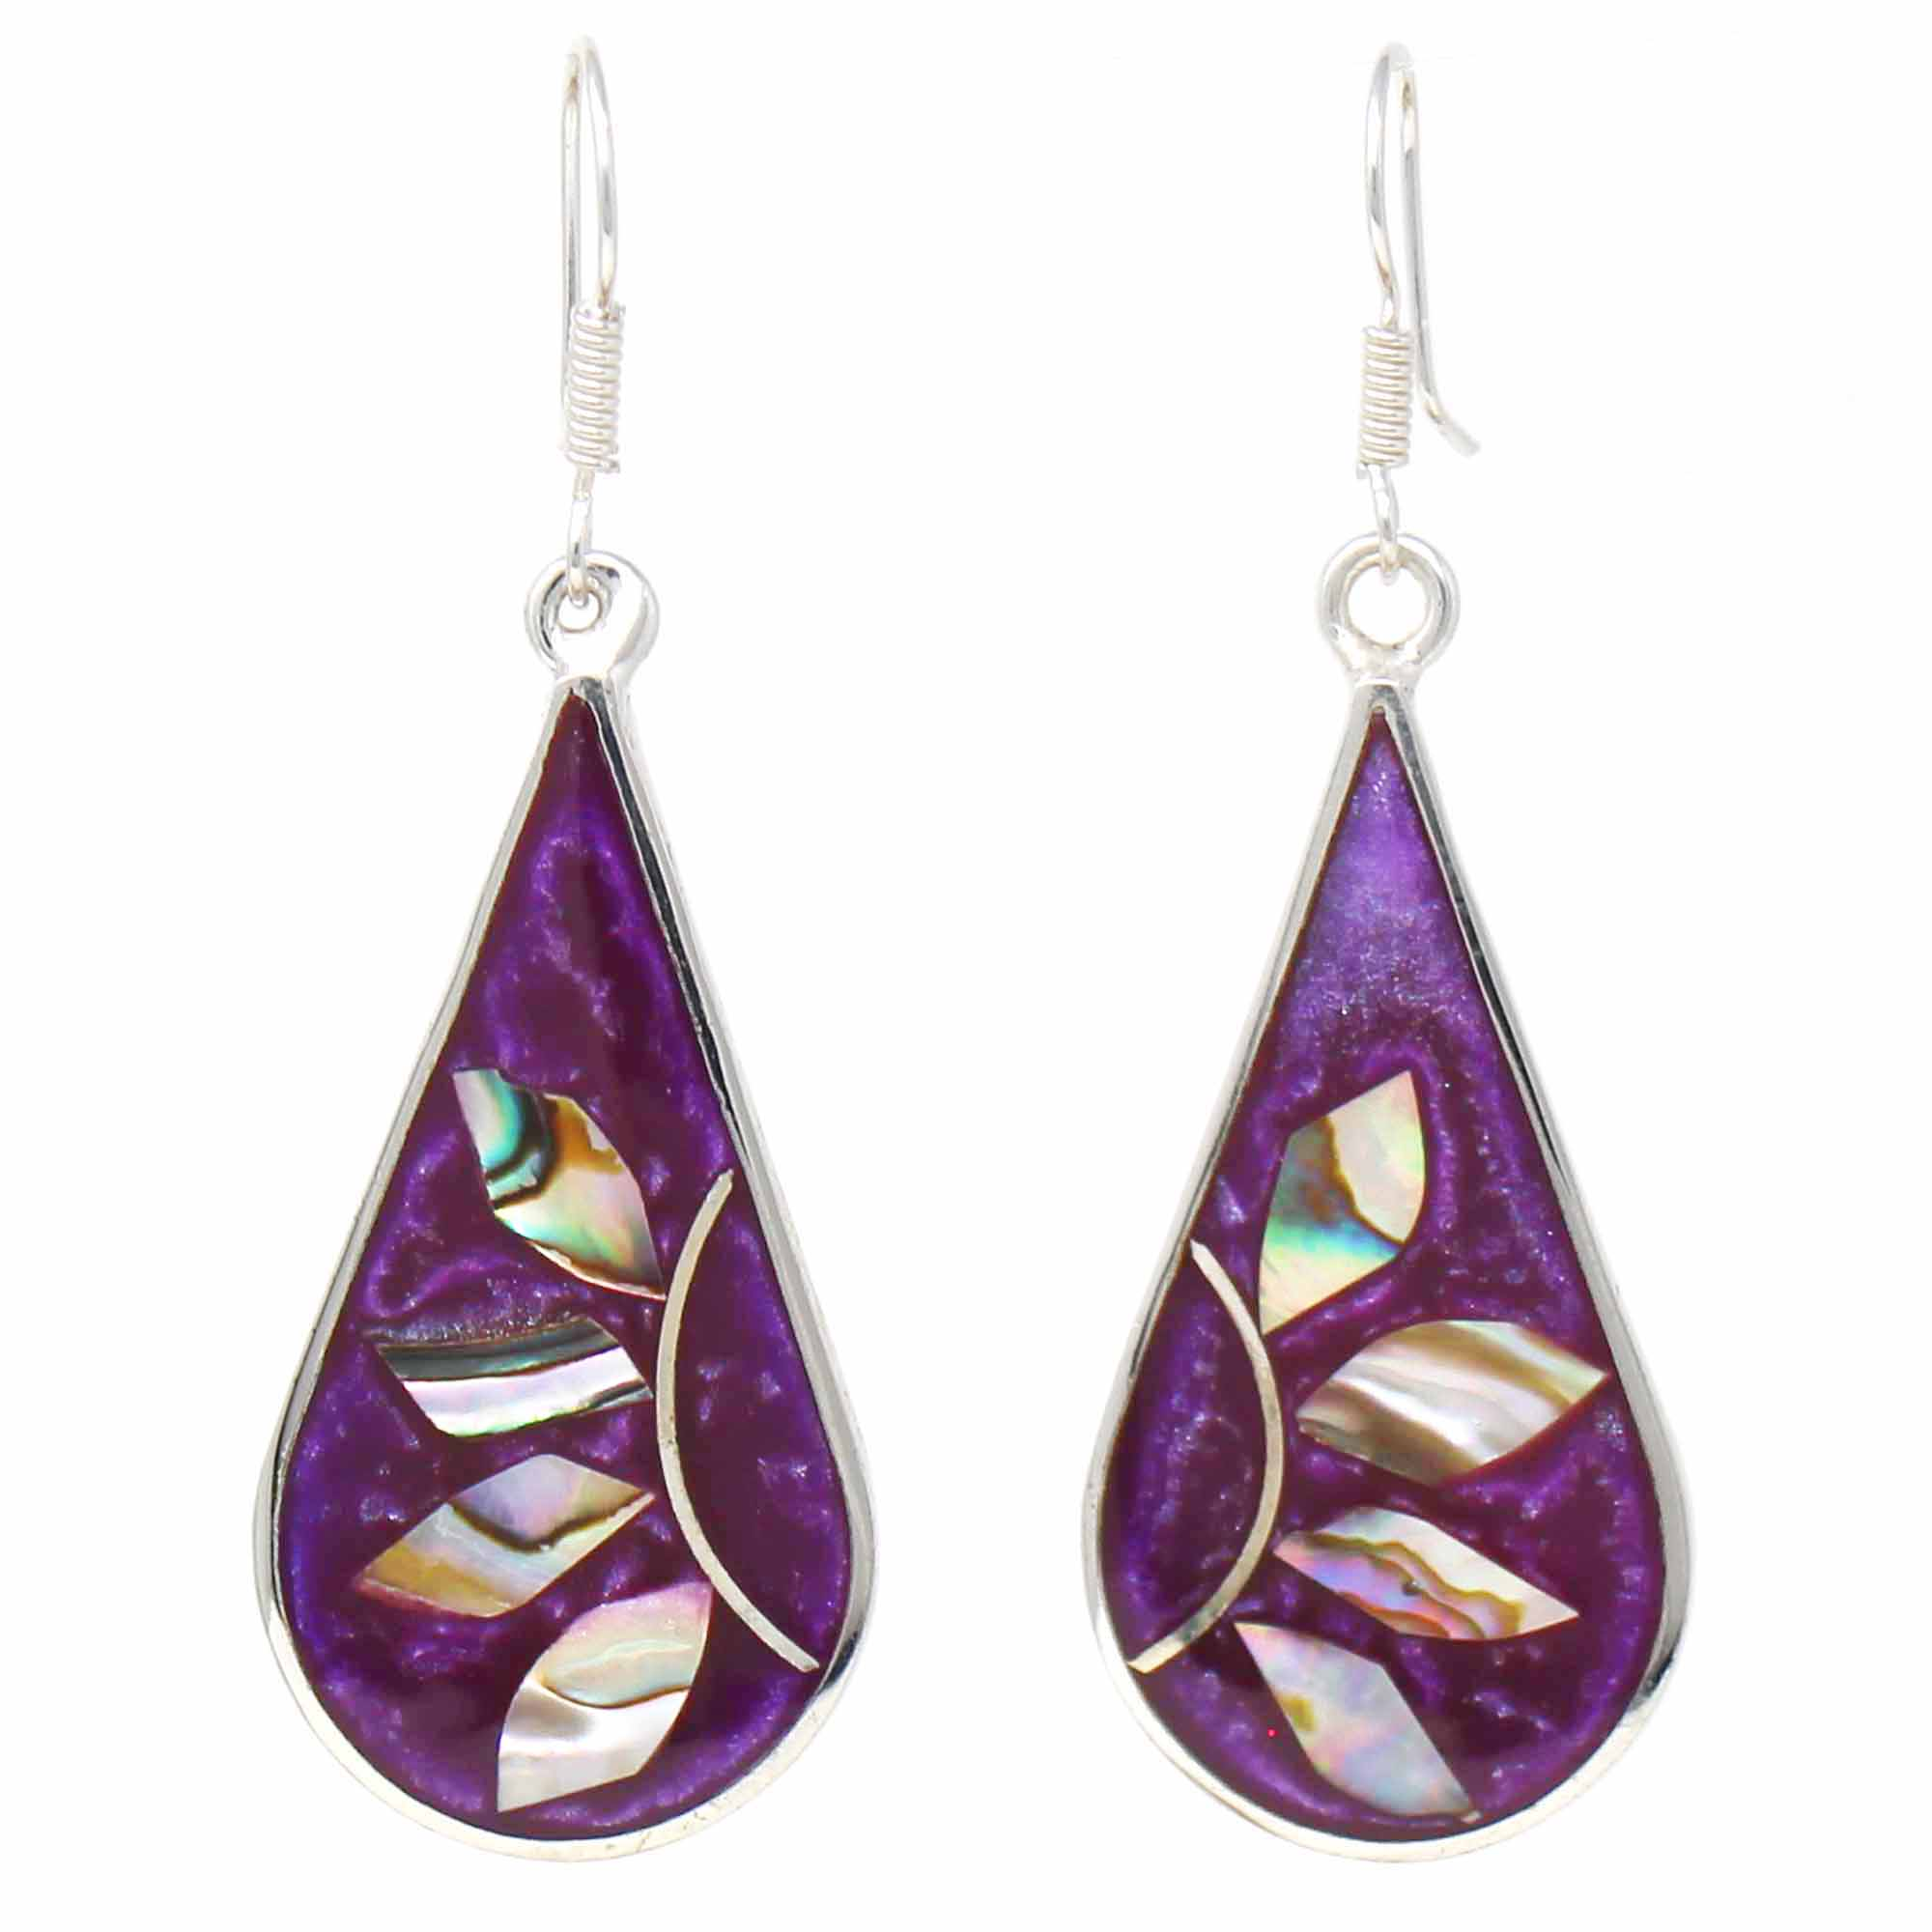 Deep Purple with Abalone Petals Teardrop Earrings